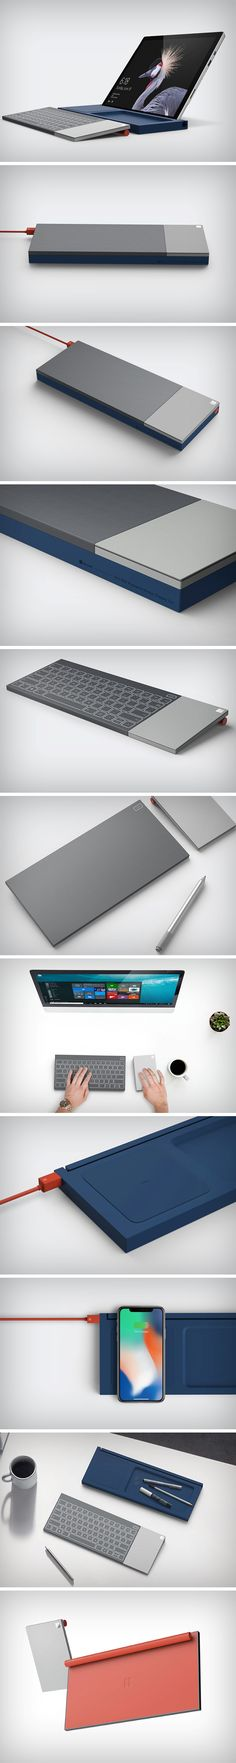 The All In One Keyboard comes with this unusual design that looks funny first, but makes a world of sense later. Fitting inside its cuboidal frame is a keyboard, a trackpad, and a wireless charging dock (that not only charges the keyboard but even your smartphones). The keyboard uses capacitve 'feather' touch to remain sleek and svelte. A cylindrical member at its bottom positions it at just the correct angle to allow you to type with ease.